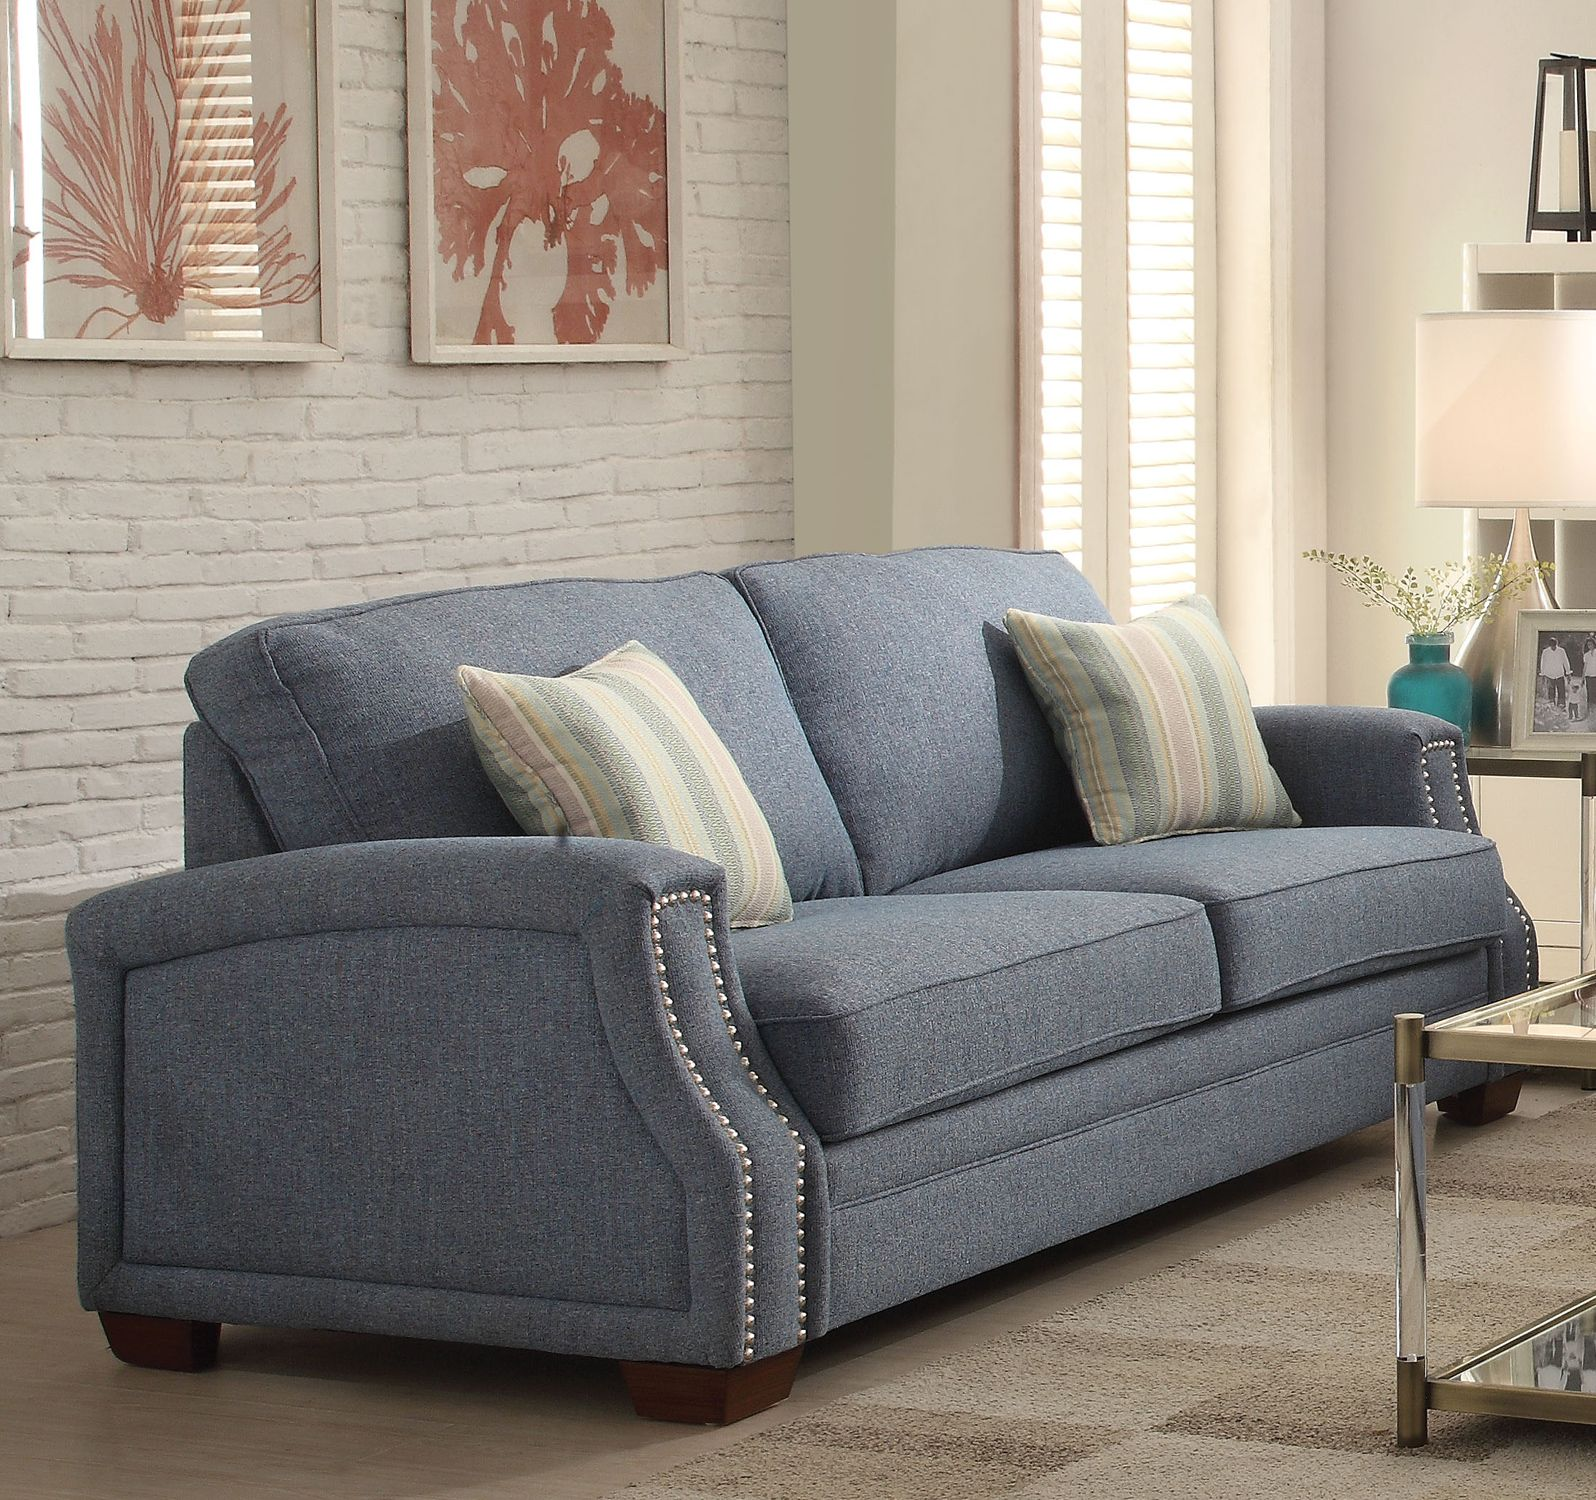 Spruce Sofa with 2 Pillows, Light Blue